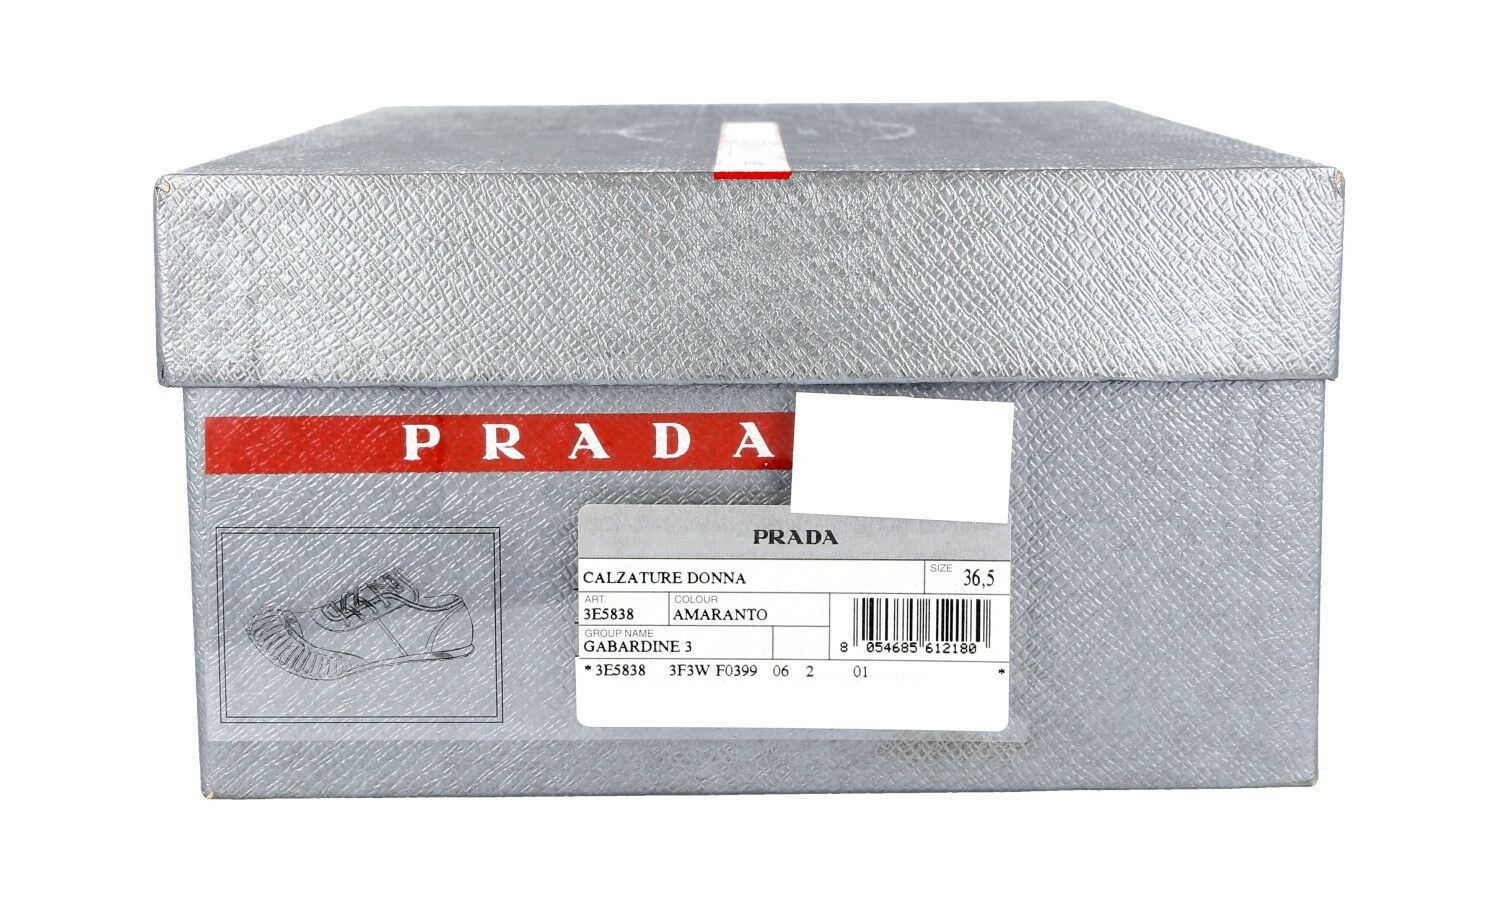 AUTHENTIC AUTHENTIC AUTHENTIC LUXURY PRADA SNEAKERS SHOES 3E5838 RED NEW US 6.5 EU 36,5 37 a07279